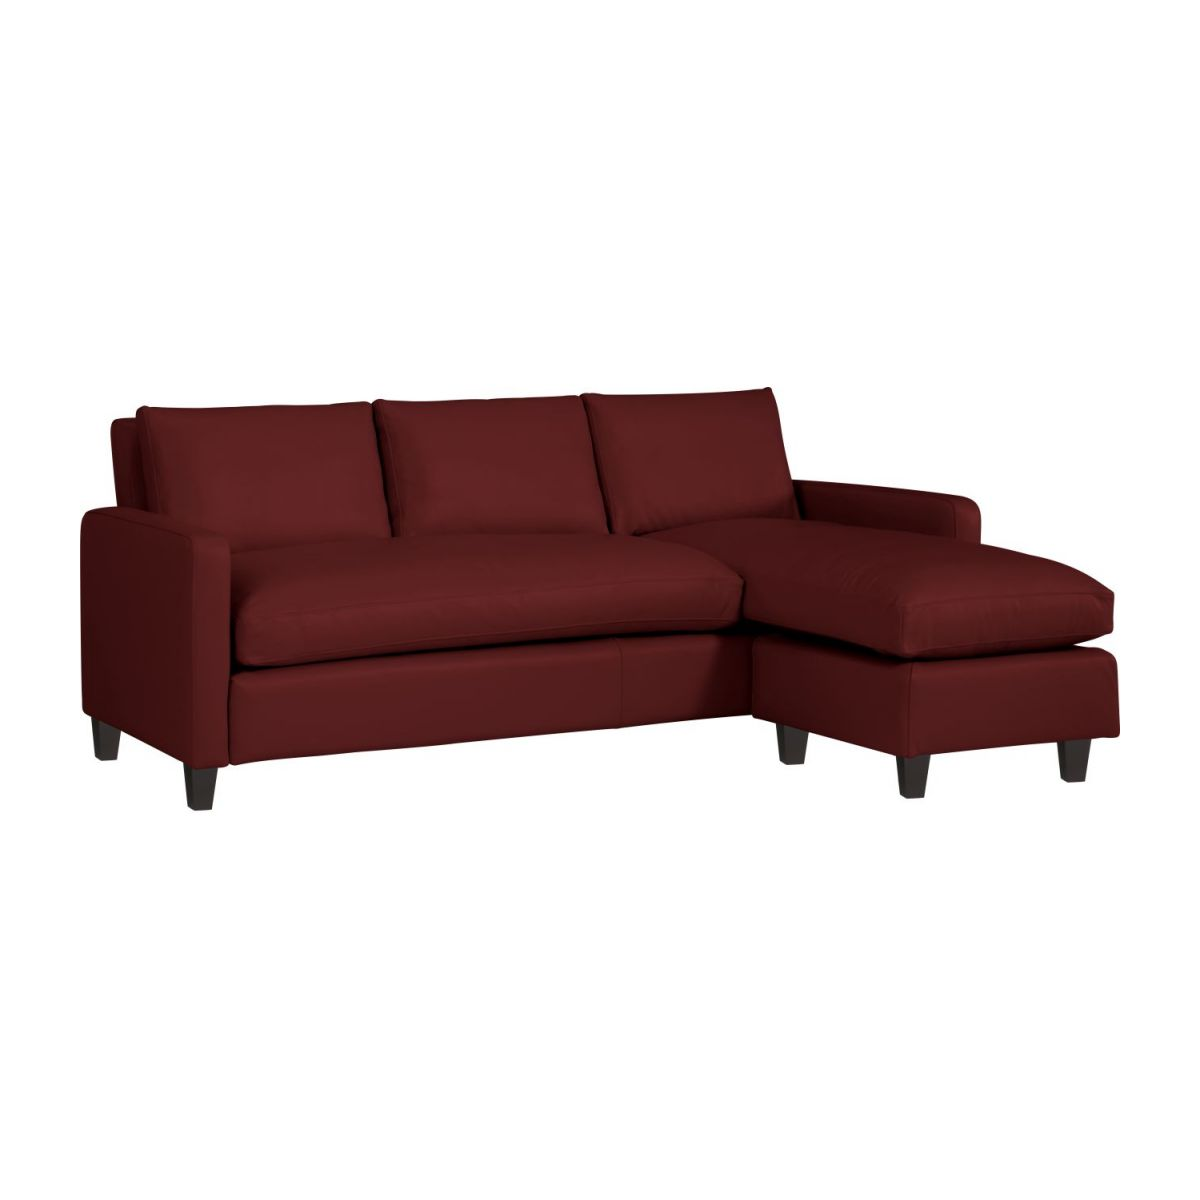 Chester Canapes Canape D Angle Rouge Cuir Habitat